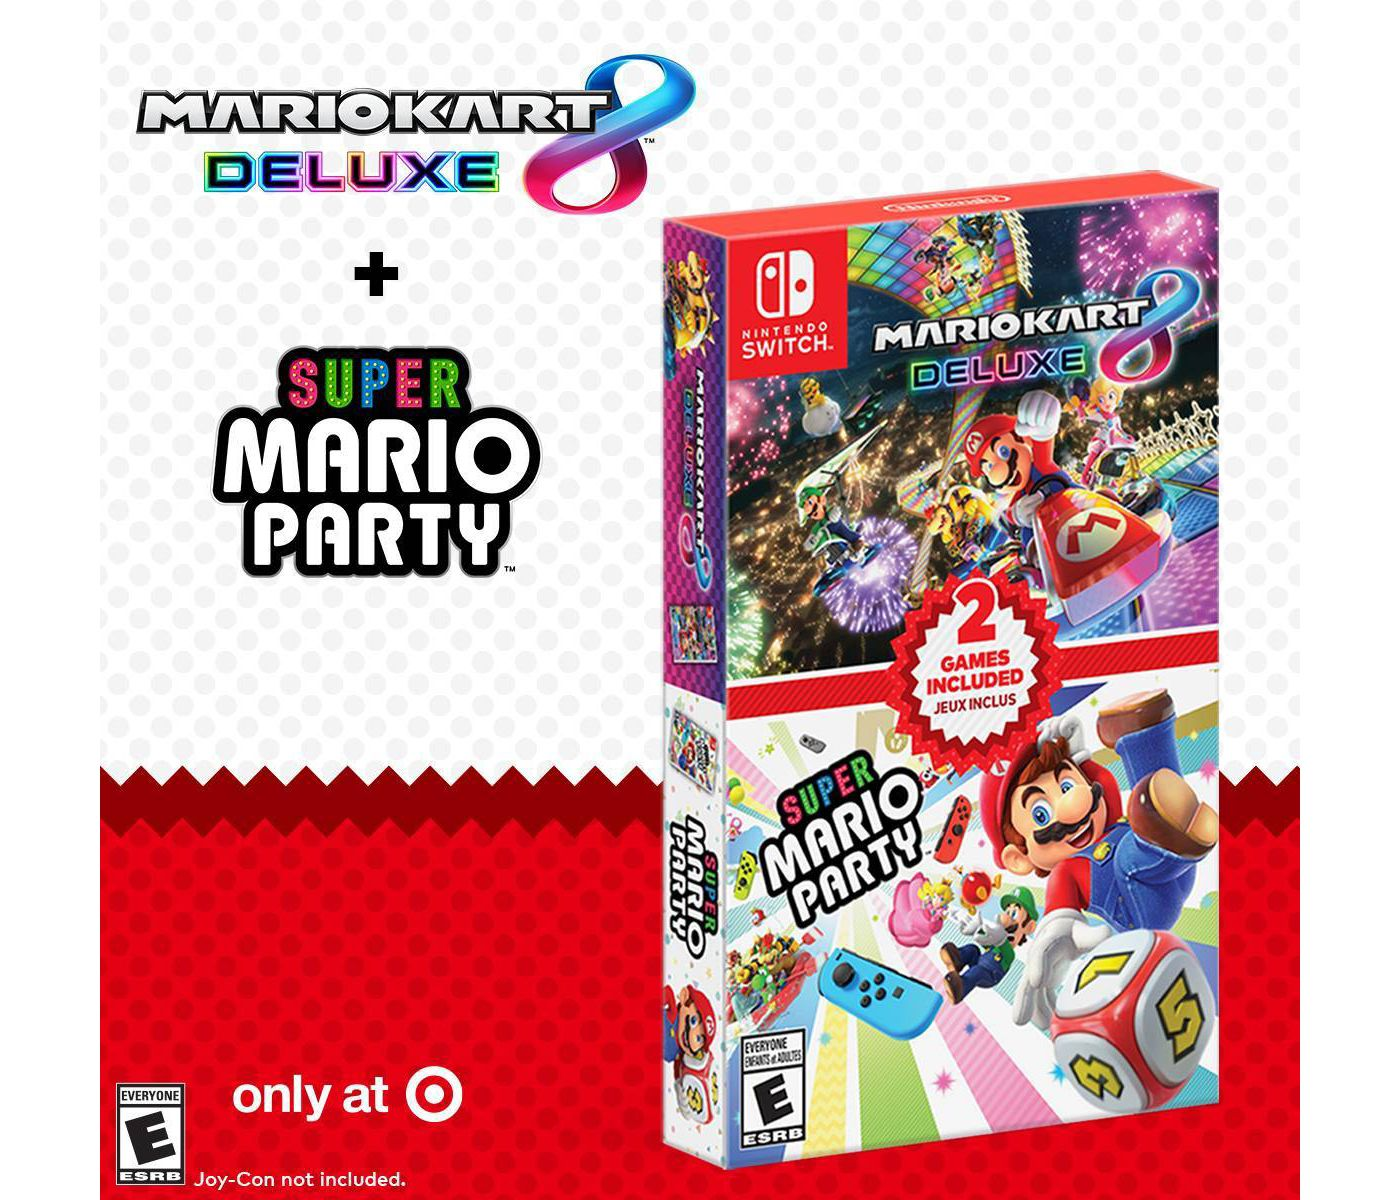 Mario Kart 8 Deluxe + Super Mario Party Double Pack for Nintendo Switch